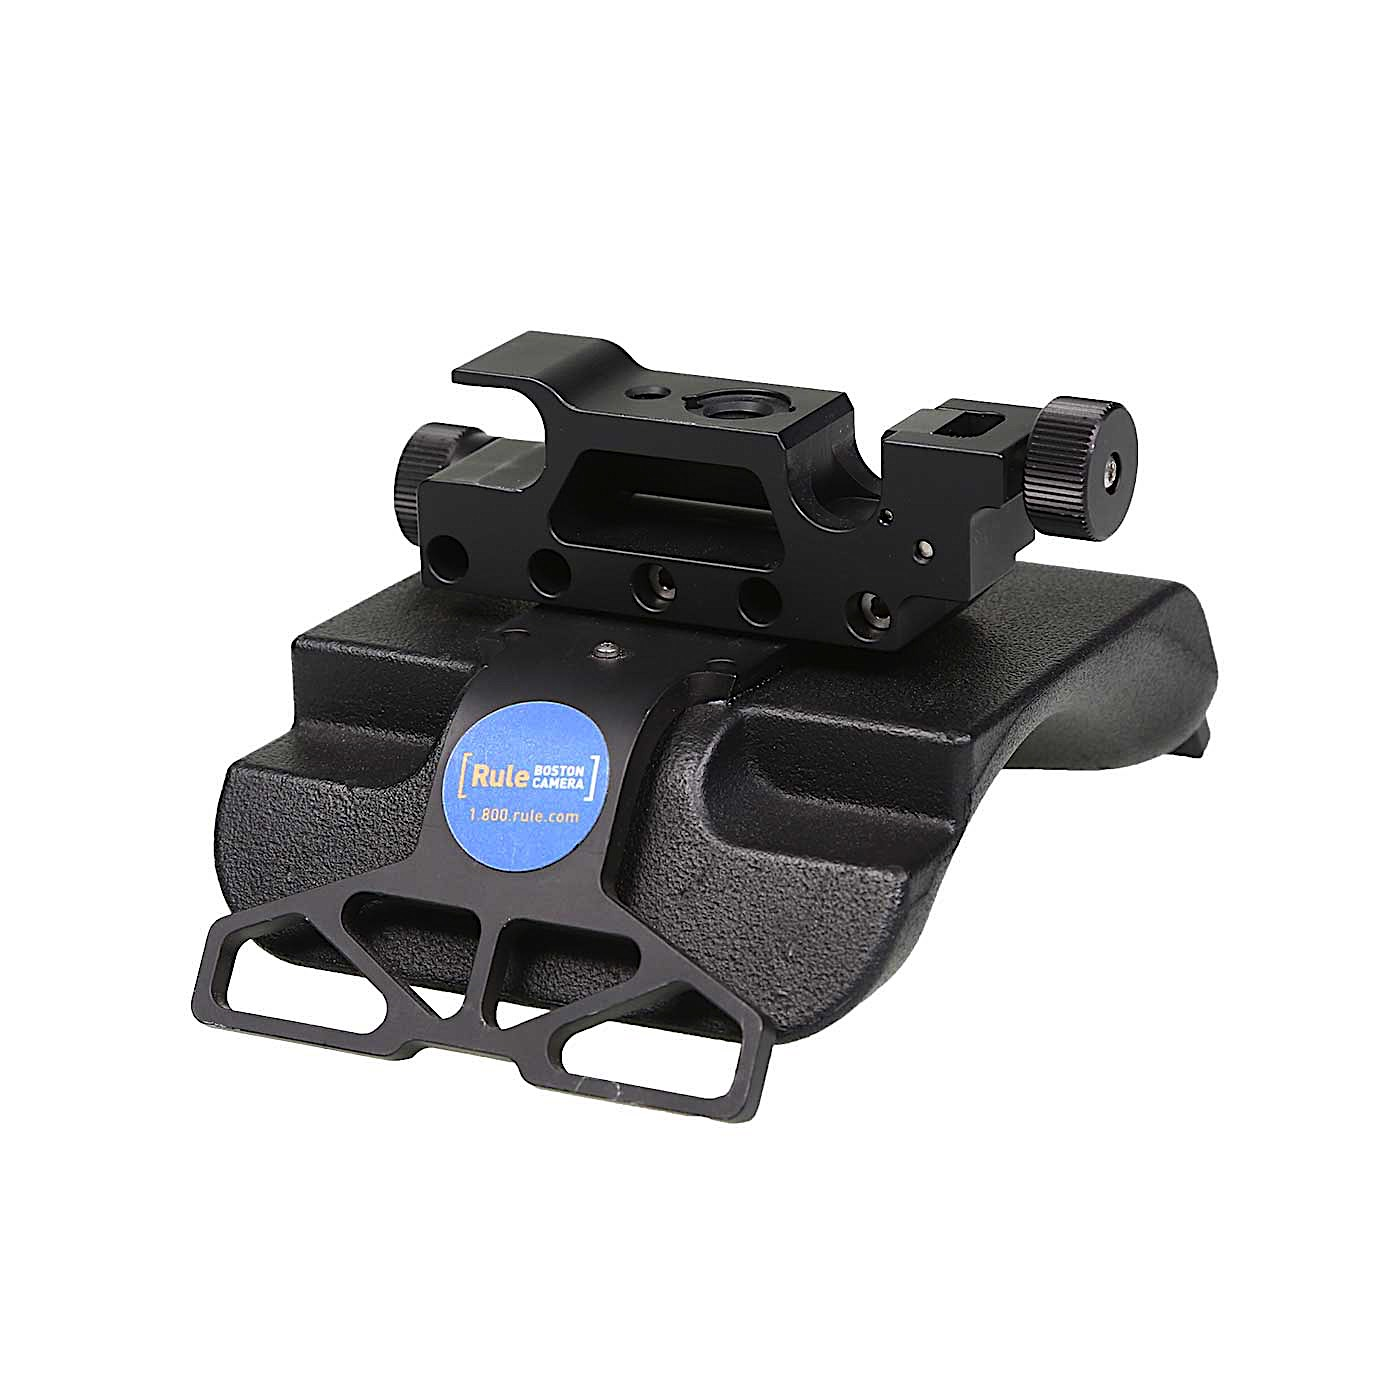 ARRI Alexa Mini CSP-1 Camera Shoulder Pad